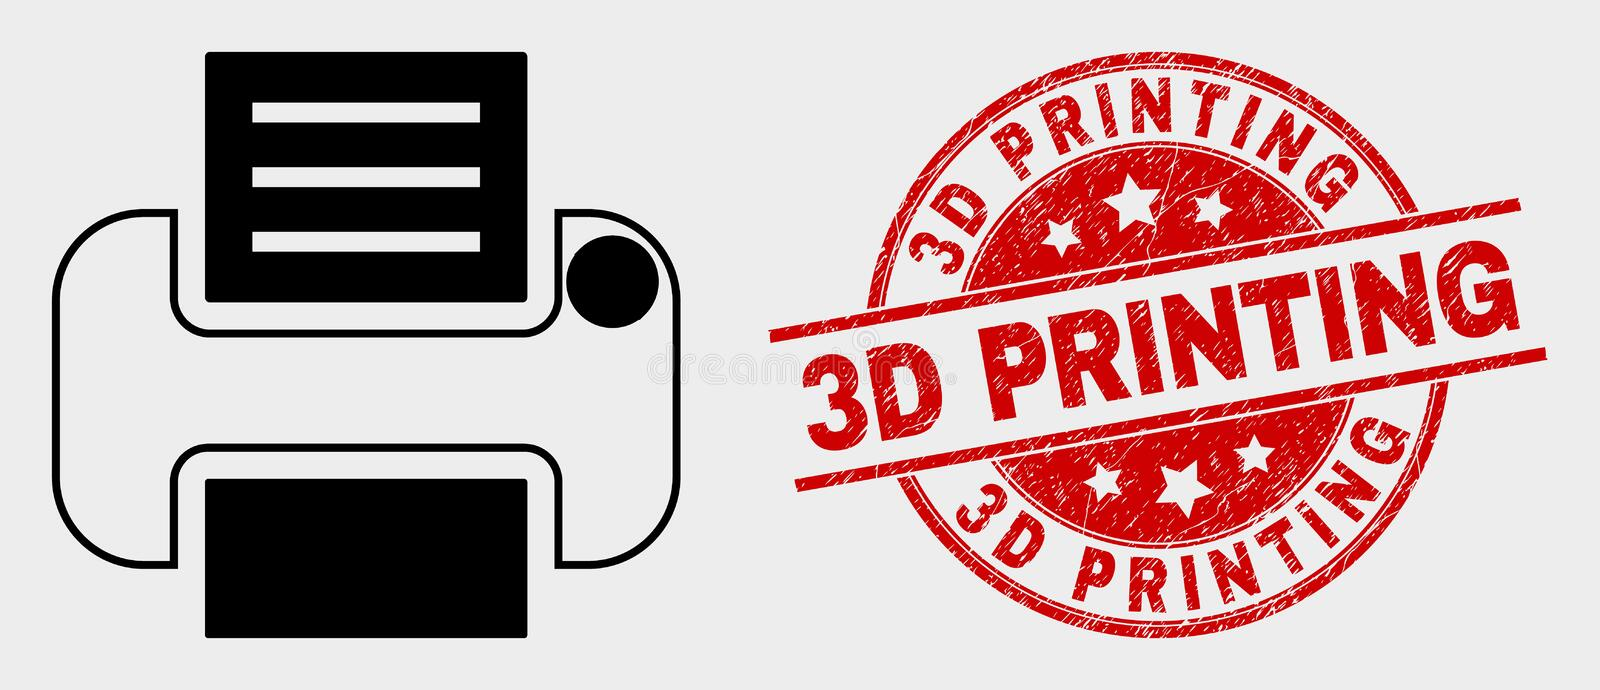 Vector Printer Icon and Distress 3D Printing Watermark. Vector printer icon and 3D Printing watermark. Red rounded scratched watermark with 3D Printing caption stock illustration